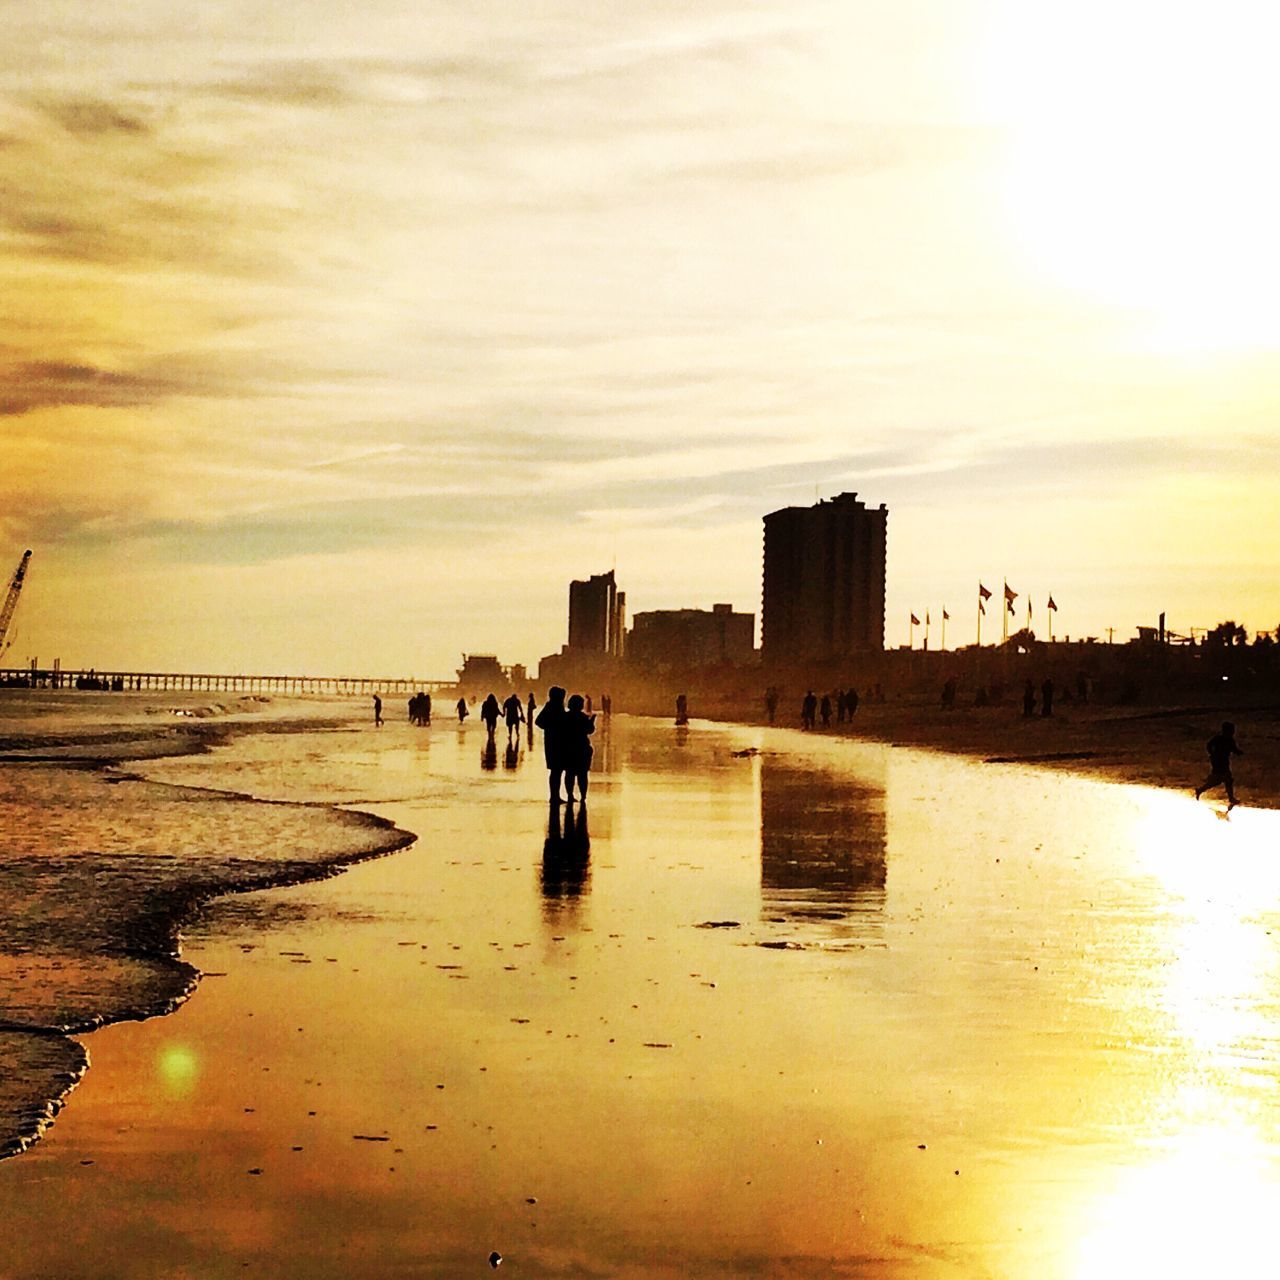 water, sky, architecture, beach, built structure, sea, sunset, reflection, nature, building exterior, outdoors, real people, men, beauty in nature, day, people